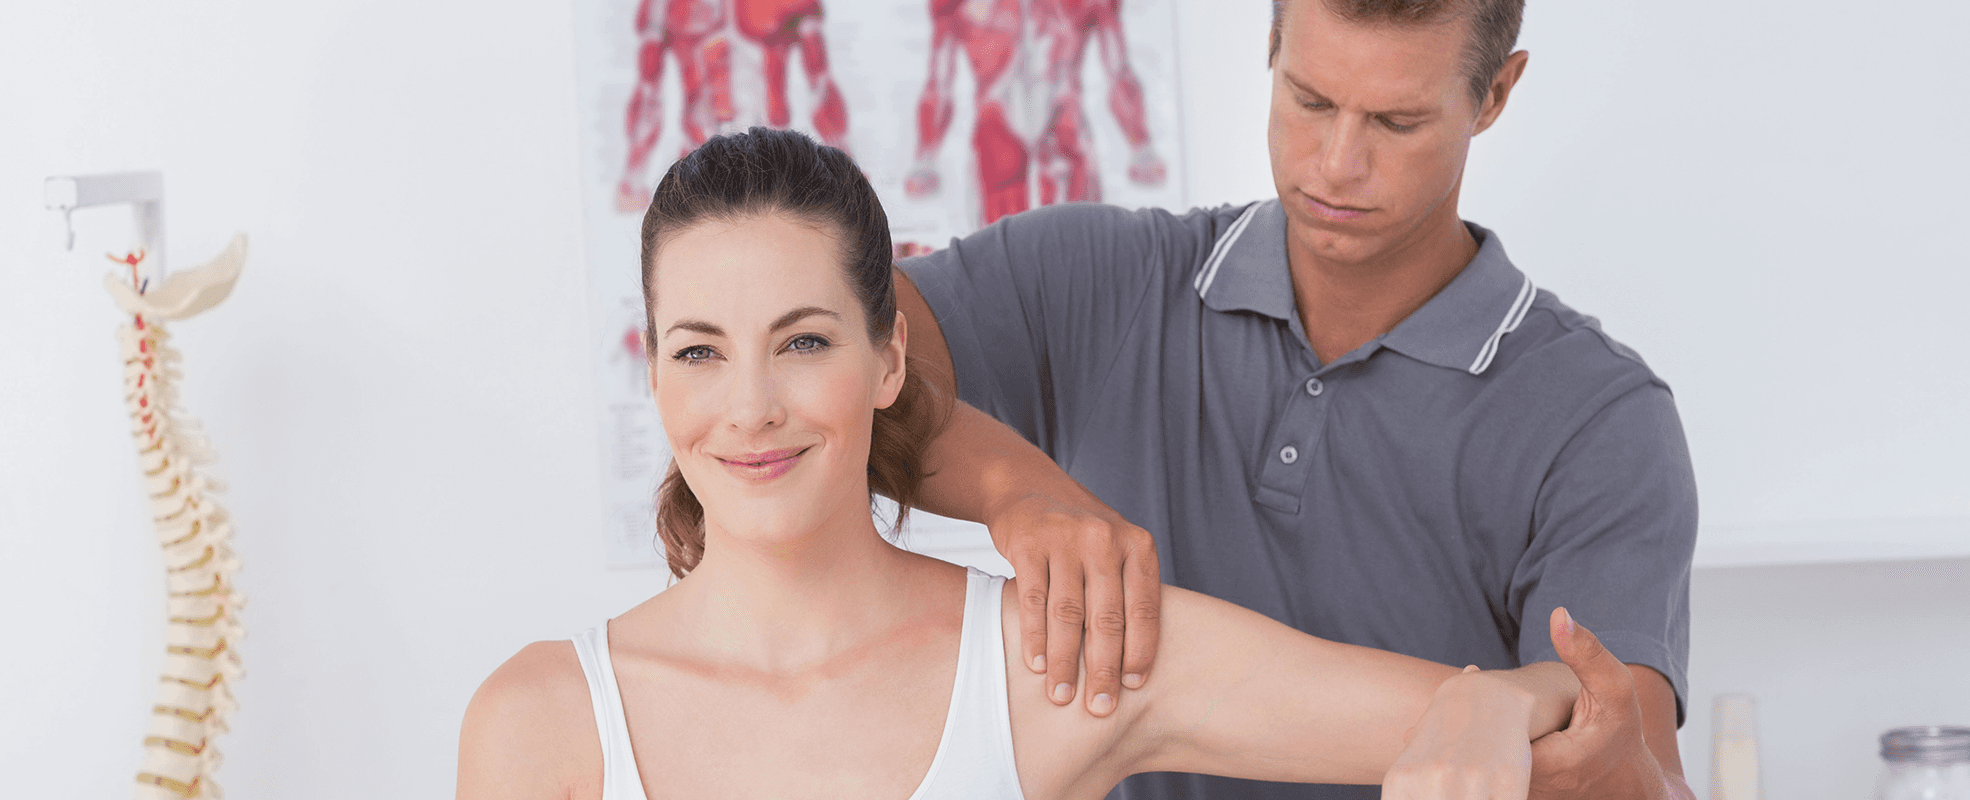 Spine Physical Therapy